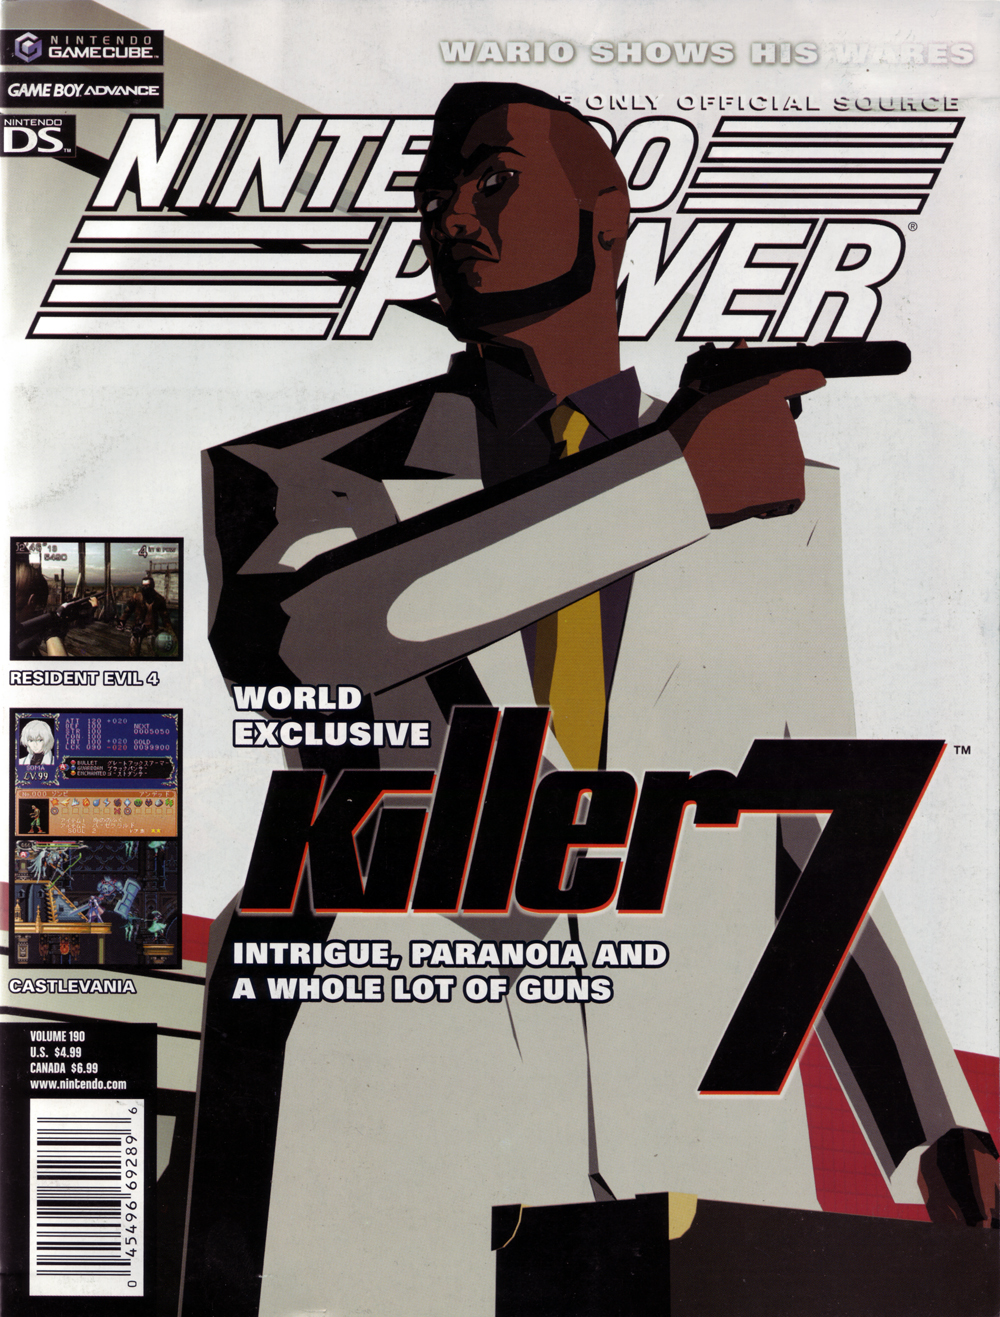 Killer7 World Exclusive: Intrigue, Paranoia and a Whole Lot of Guns